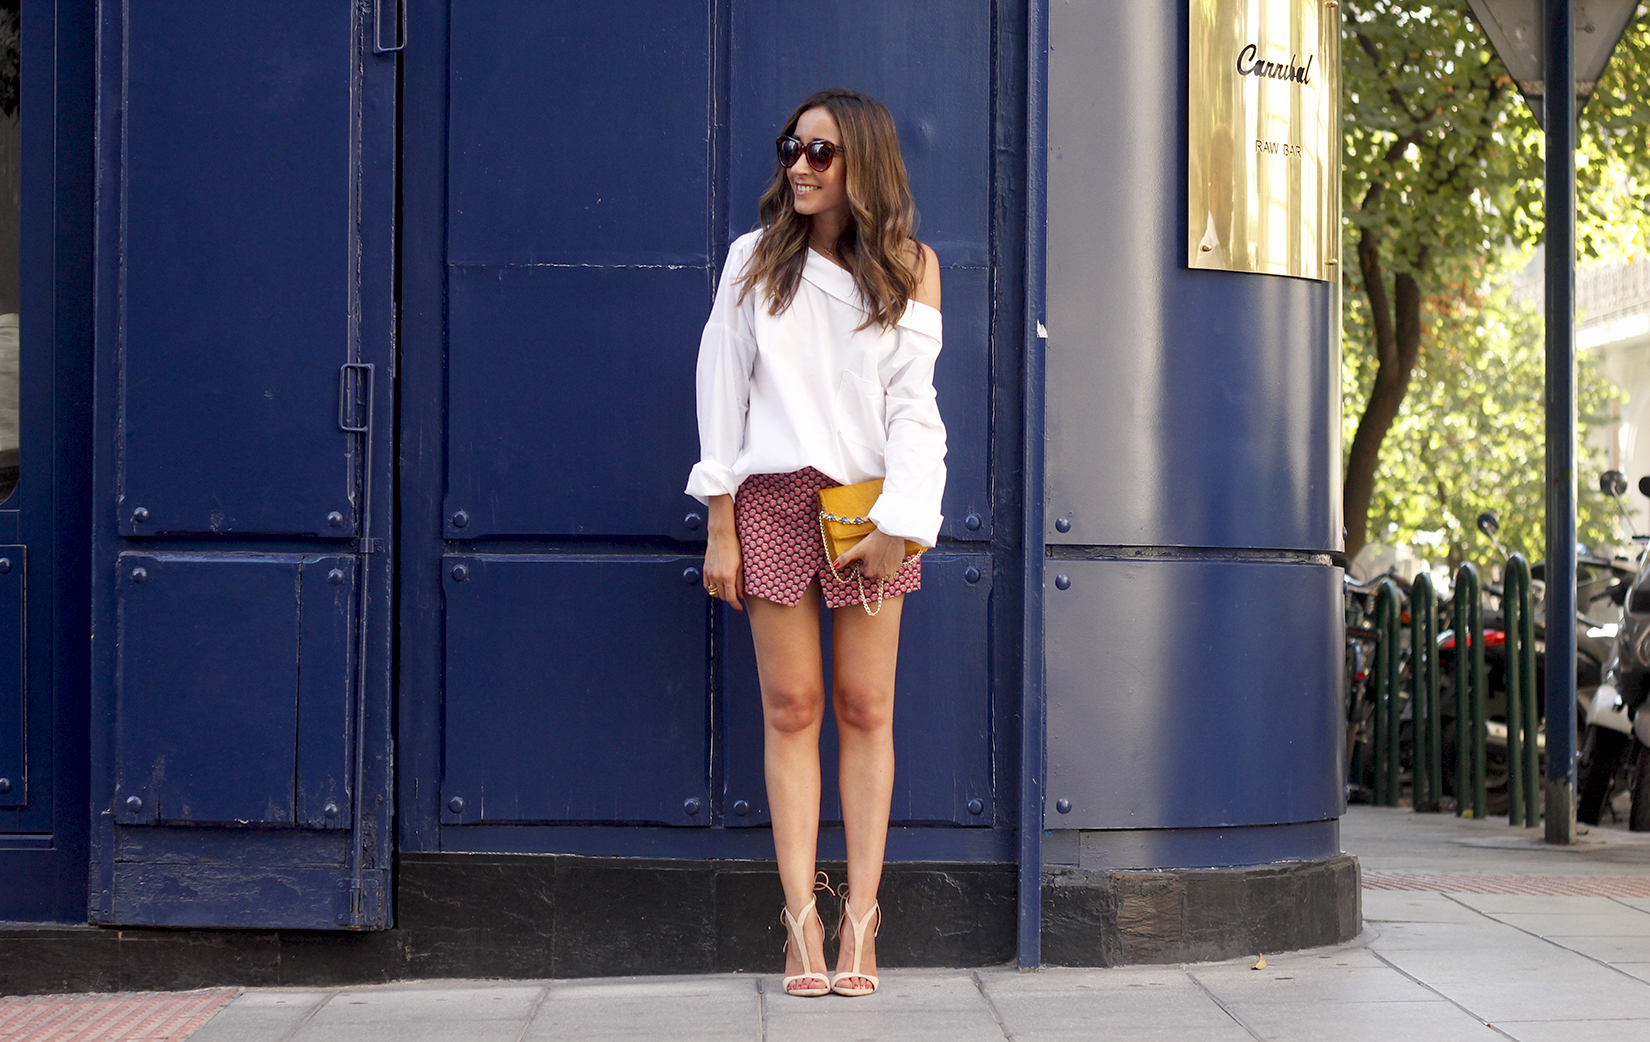 White shirt with printed shorts uterquë bag summer outfit style heels05